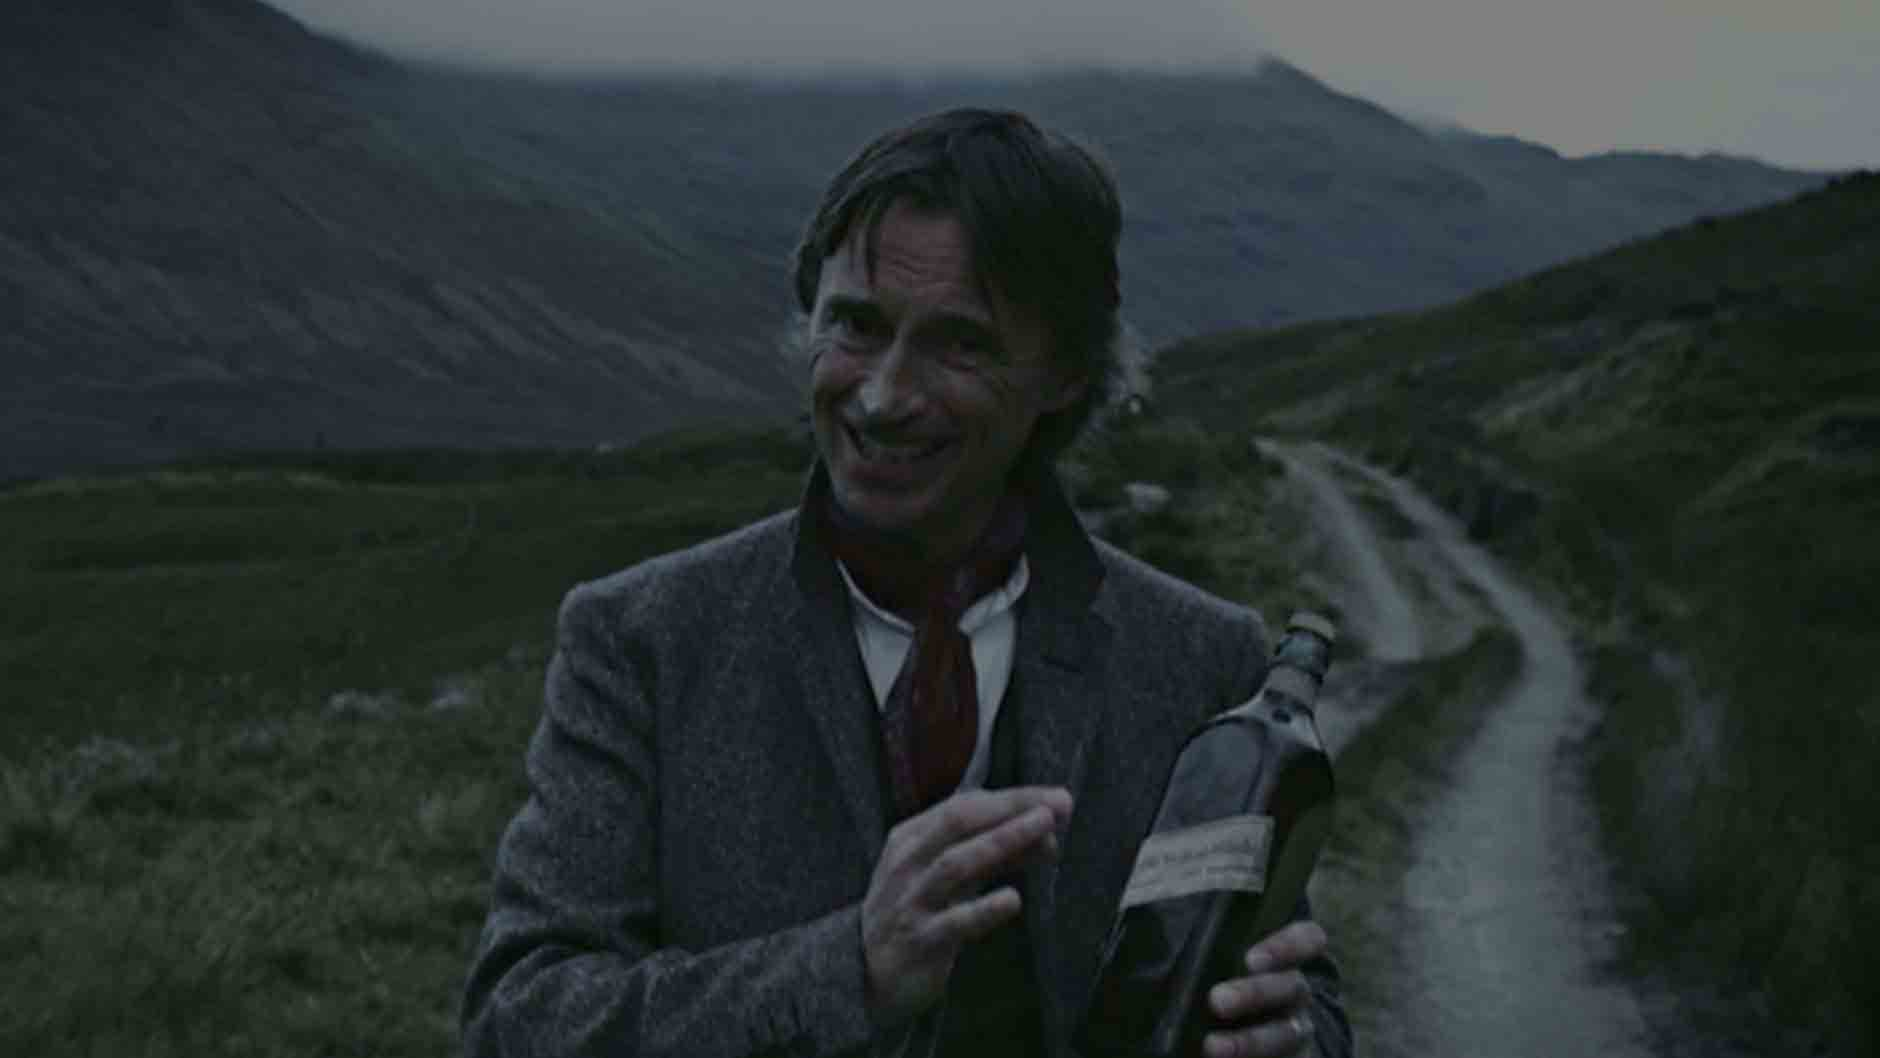 Robert Carlyle holding a bottle of Johnnie Walker whisky